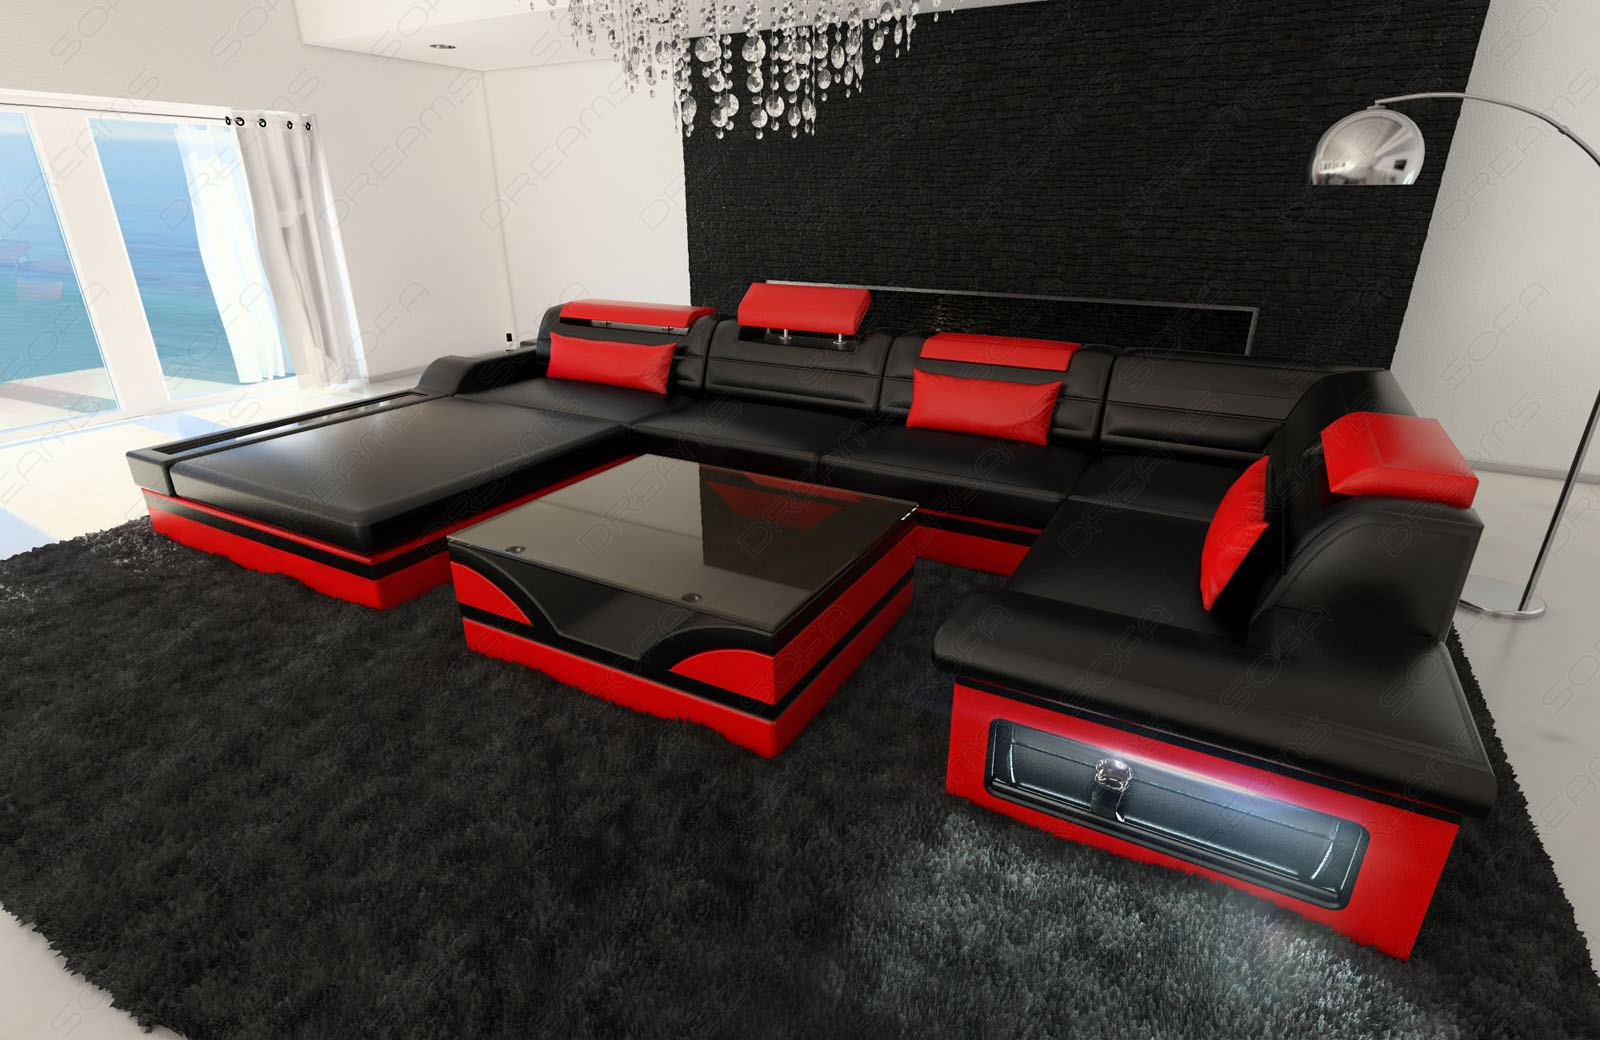 ledersofa exklusive wohnlandschaft mezzo u recamiere designer couch schwarz rot ebay. Black Bedroom Furniture Sets. Home Design Ideas